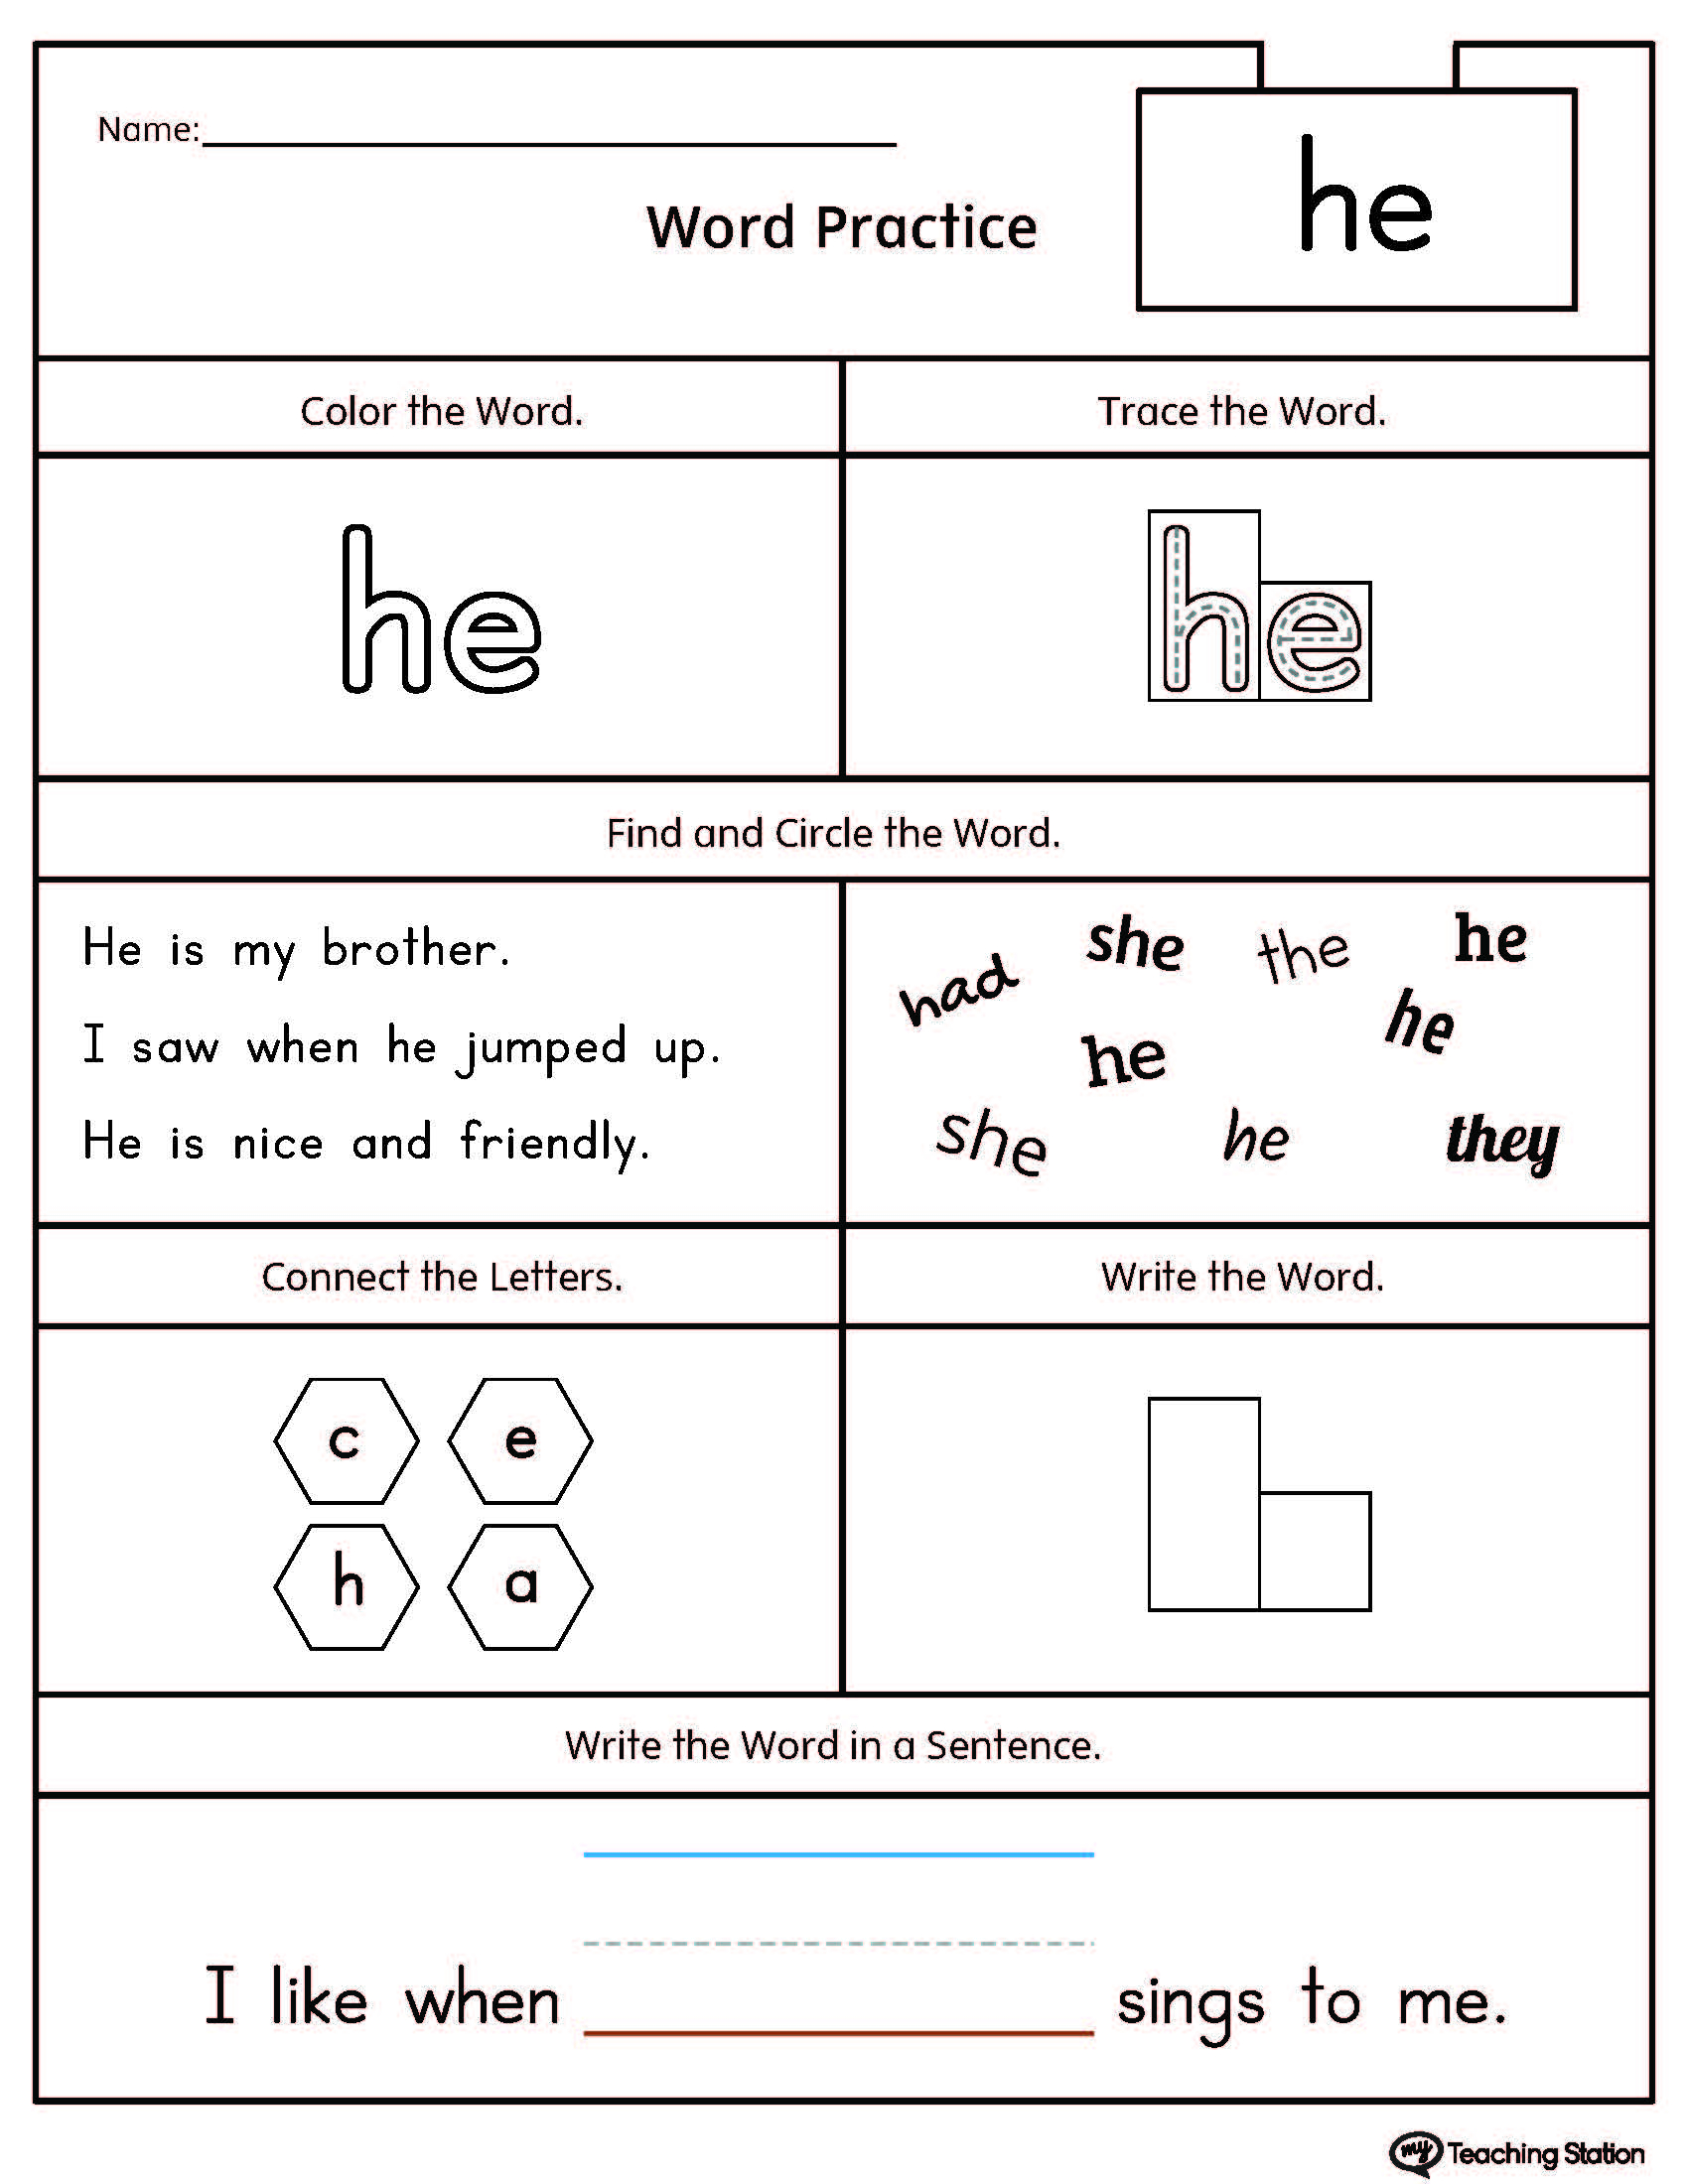 Free Sight Word Worksheets For Kindergarten